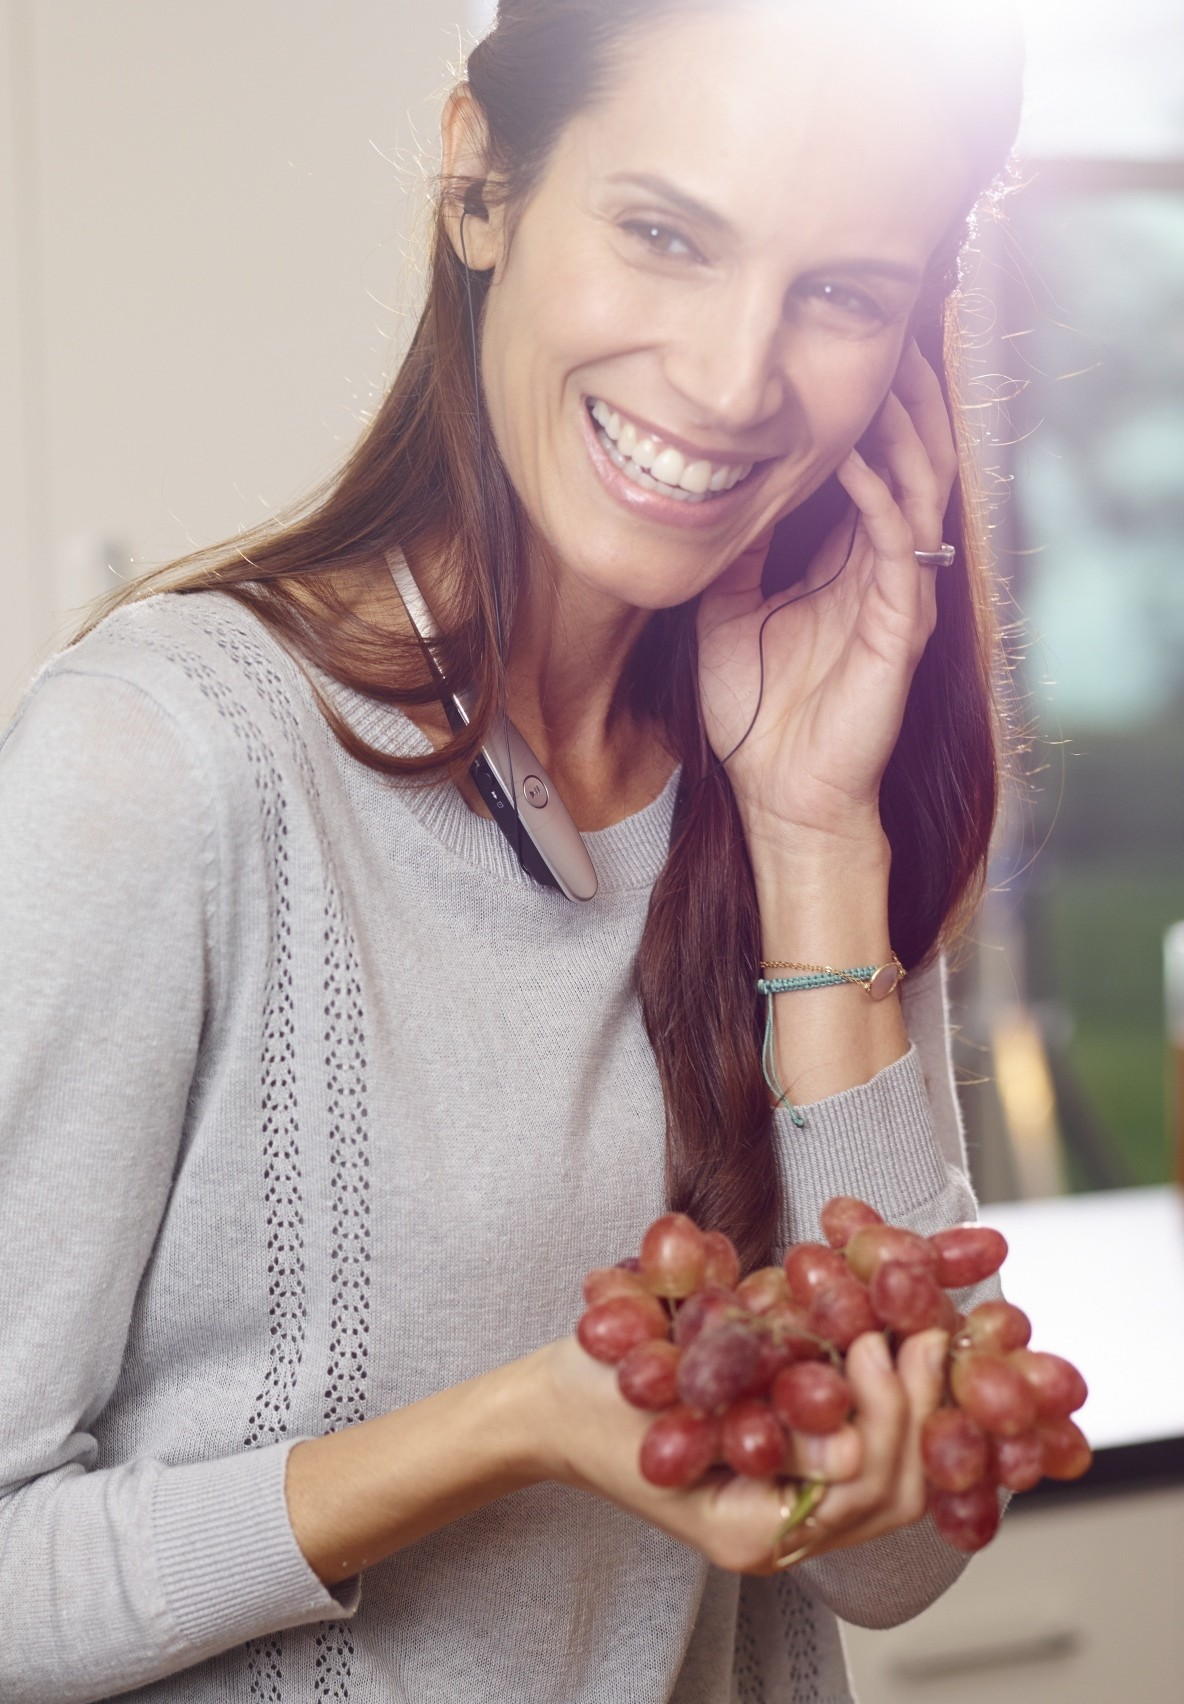 A woman talking on her phone through a LG TONETM Bluetooth headset while holding grapes in her hand.